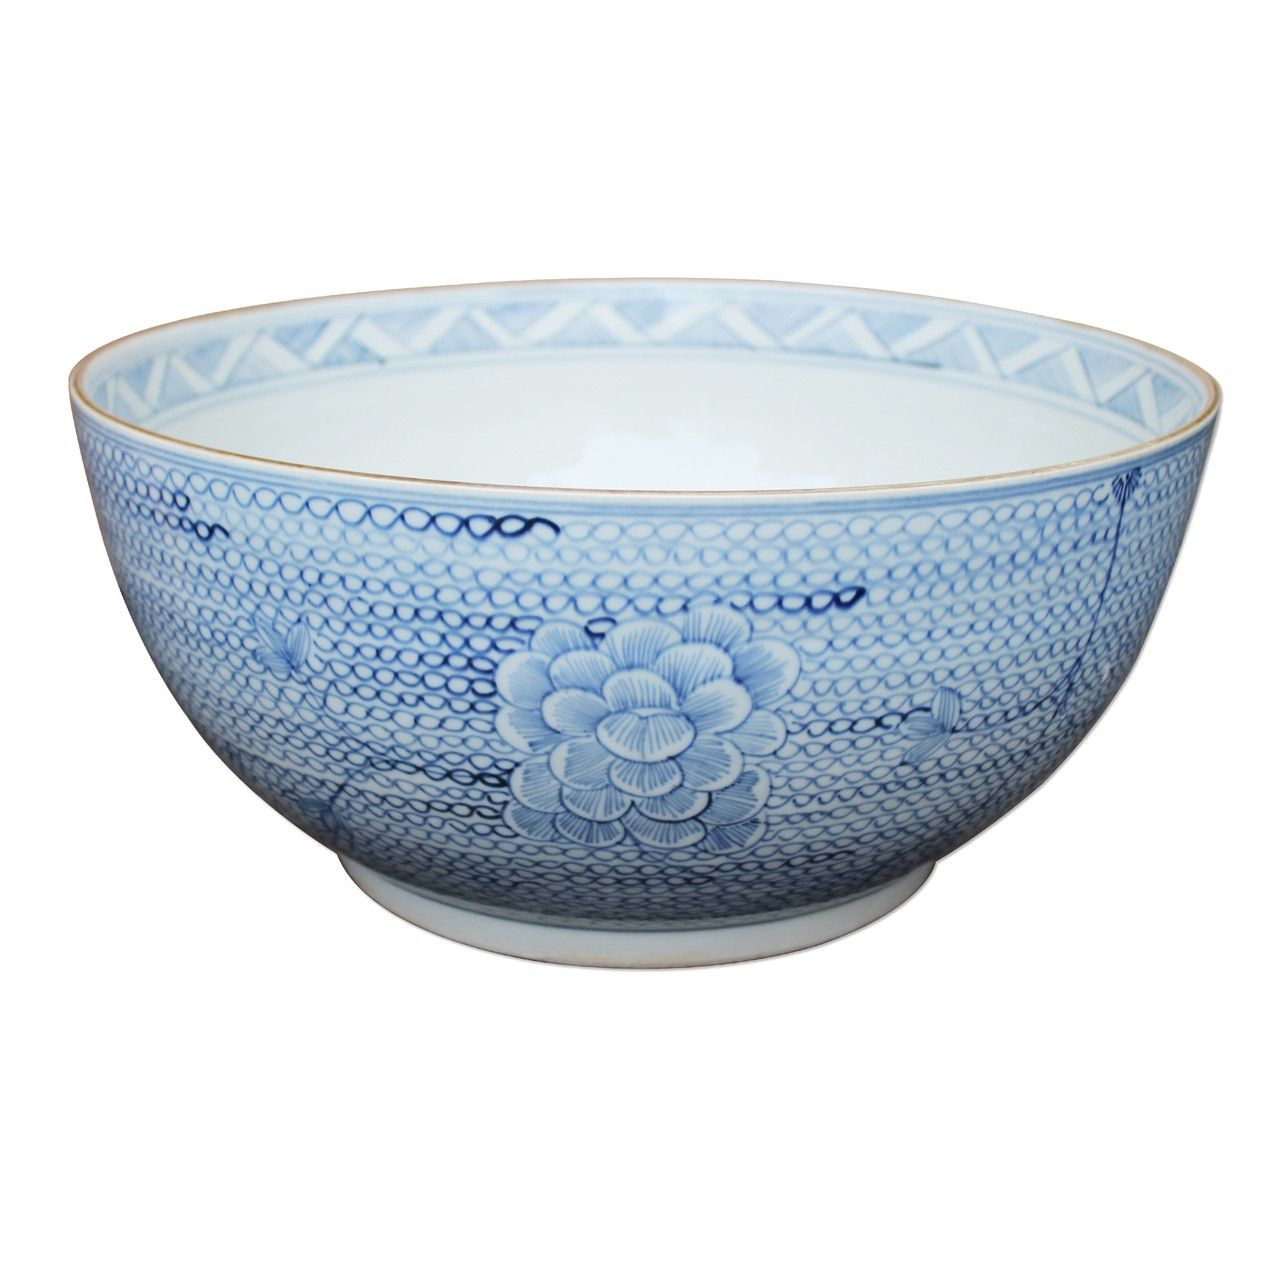 Blue Decorative Bowl Blue And White Decorative Bowl  Low Stock  Order Now  Low Stock